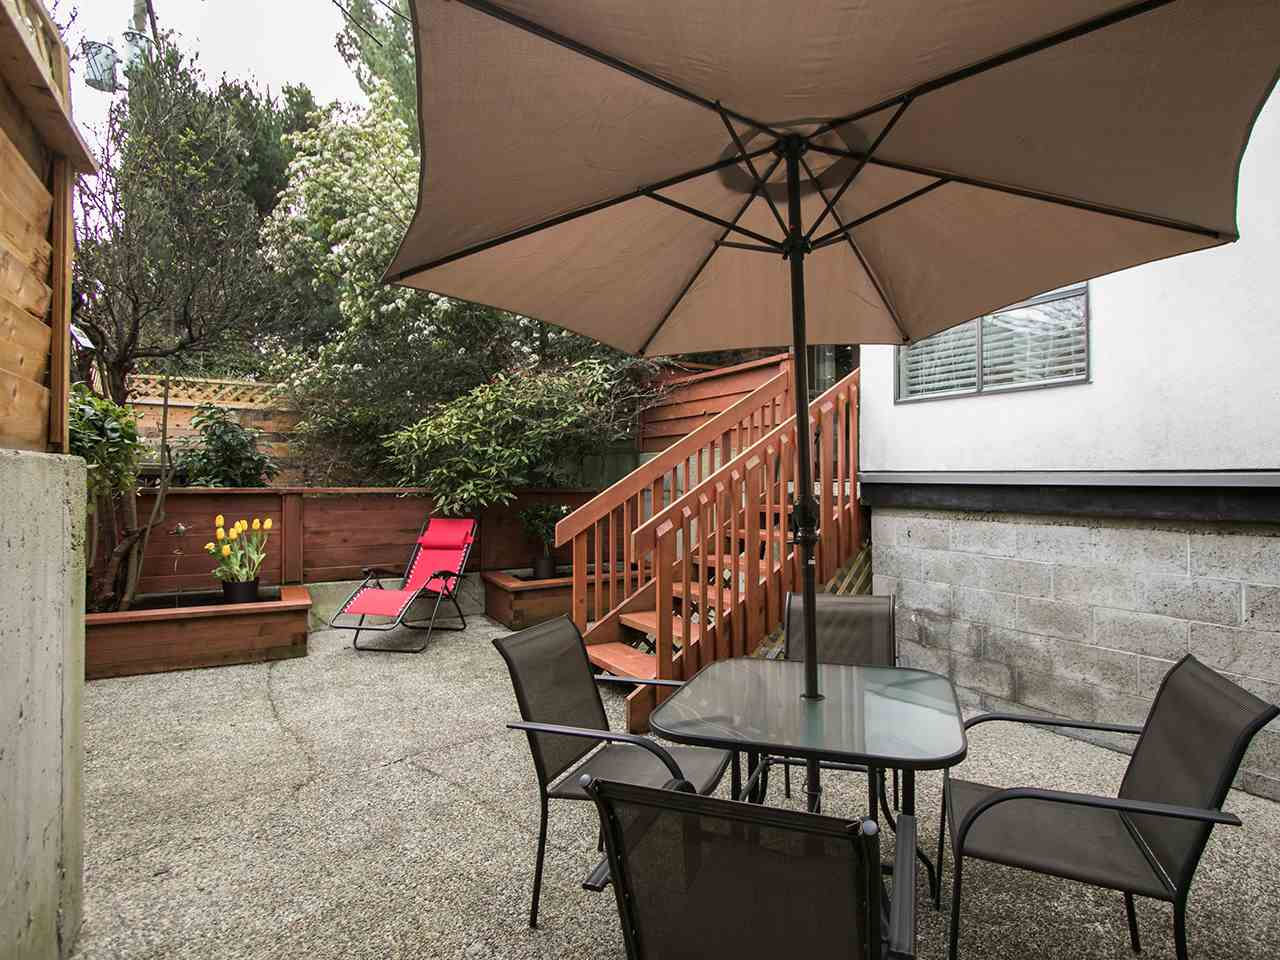 Photo 19: 101 1775 W 10TH AVENUE in Vancouver: Fairview VW Condo for sale (Vancouver West)  : MLS® # R2038742